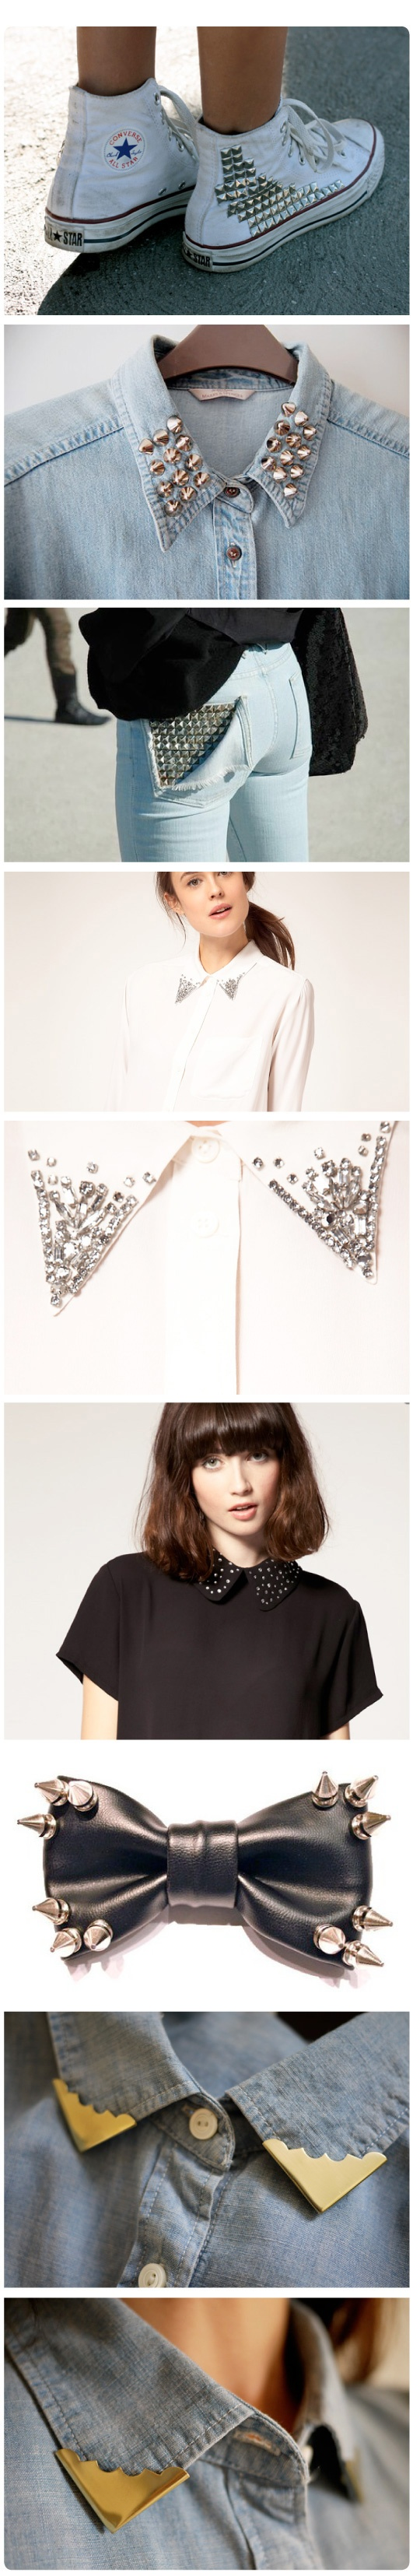 studded collars and things